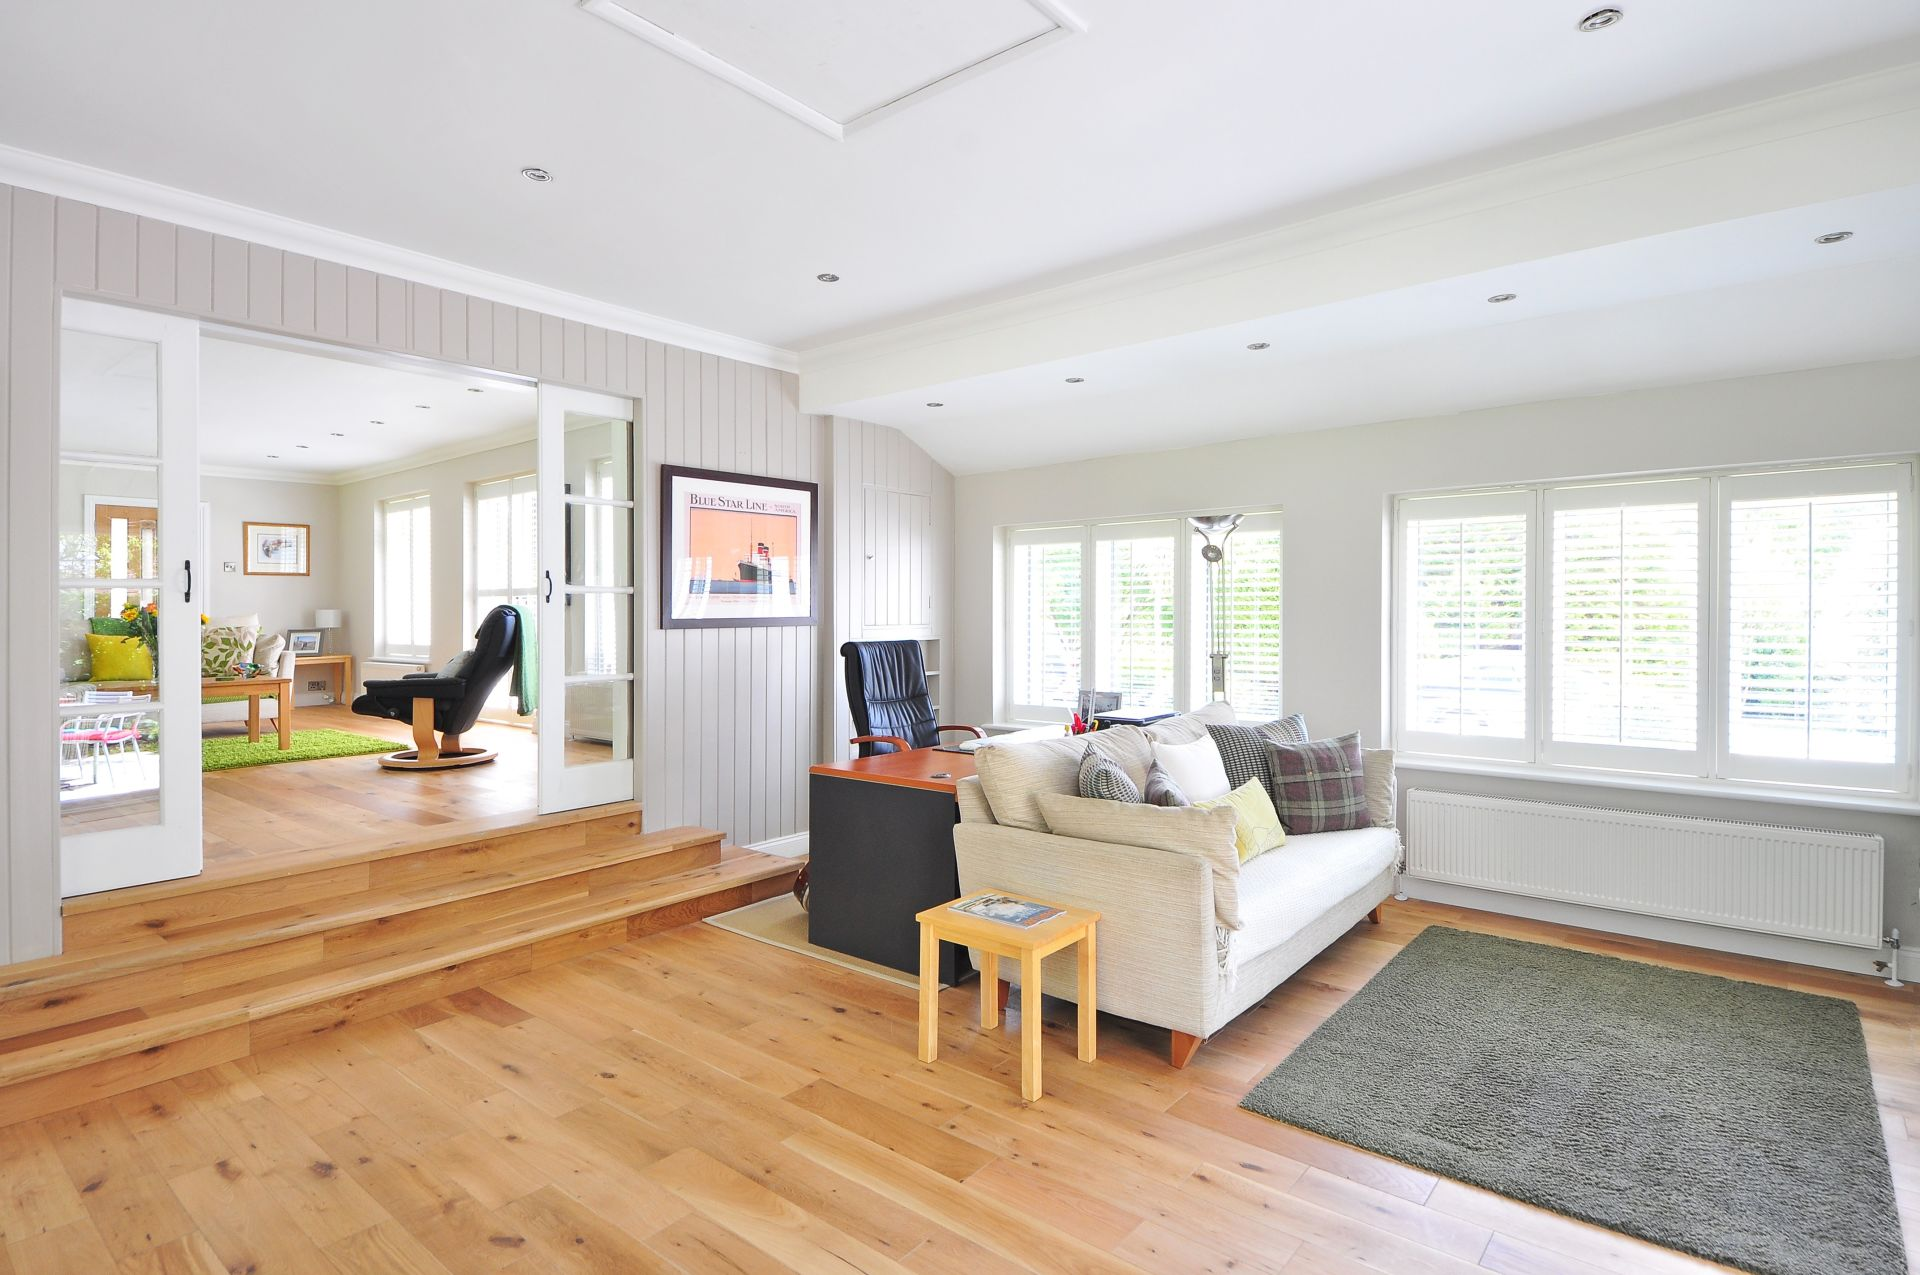 Making Your Property More Appealing